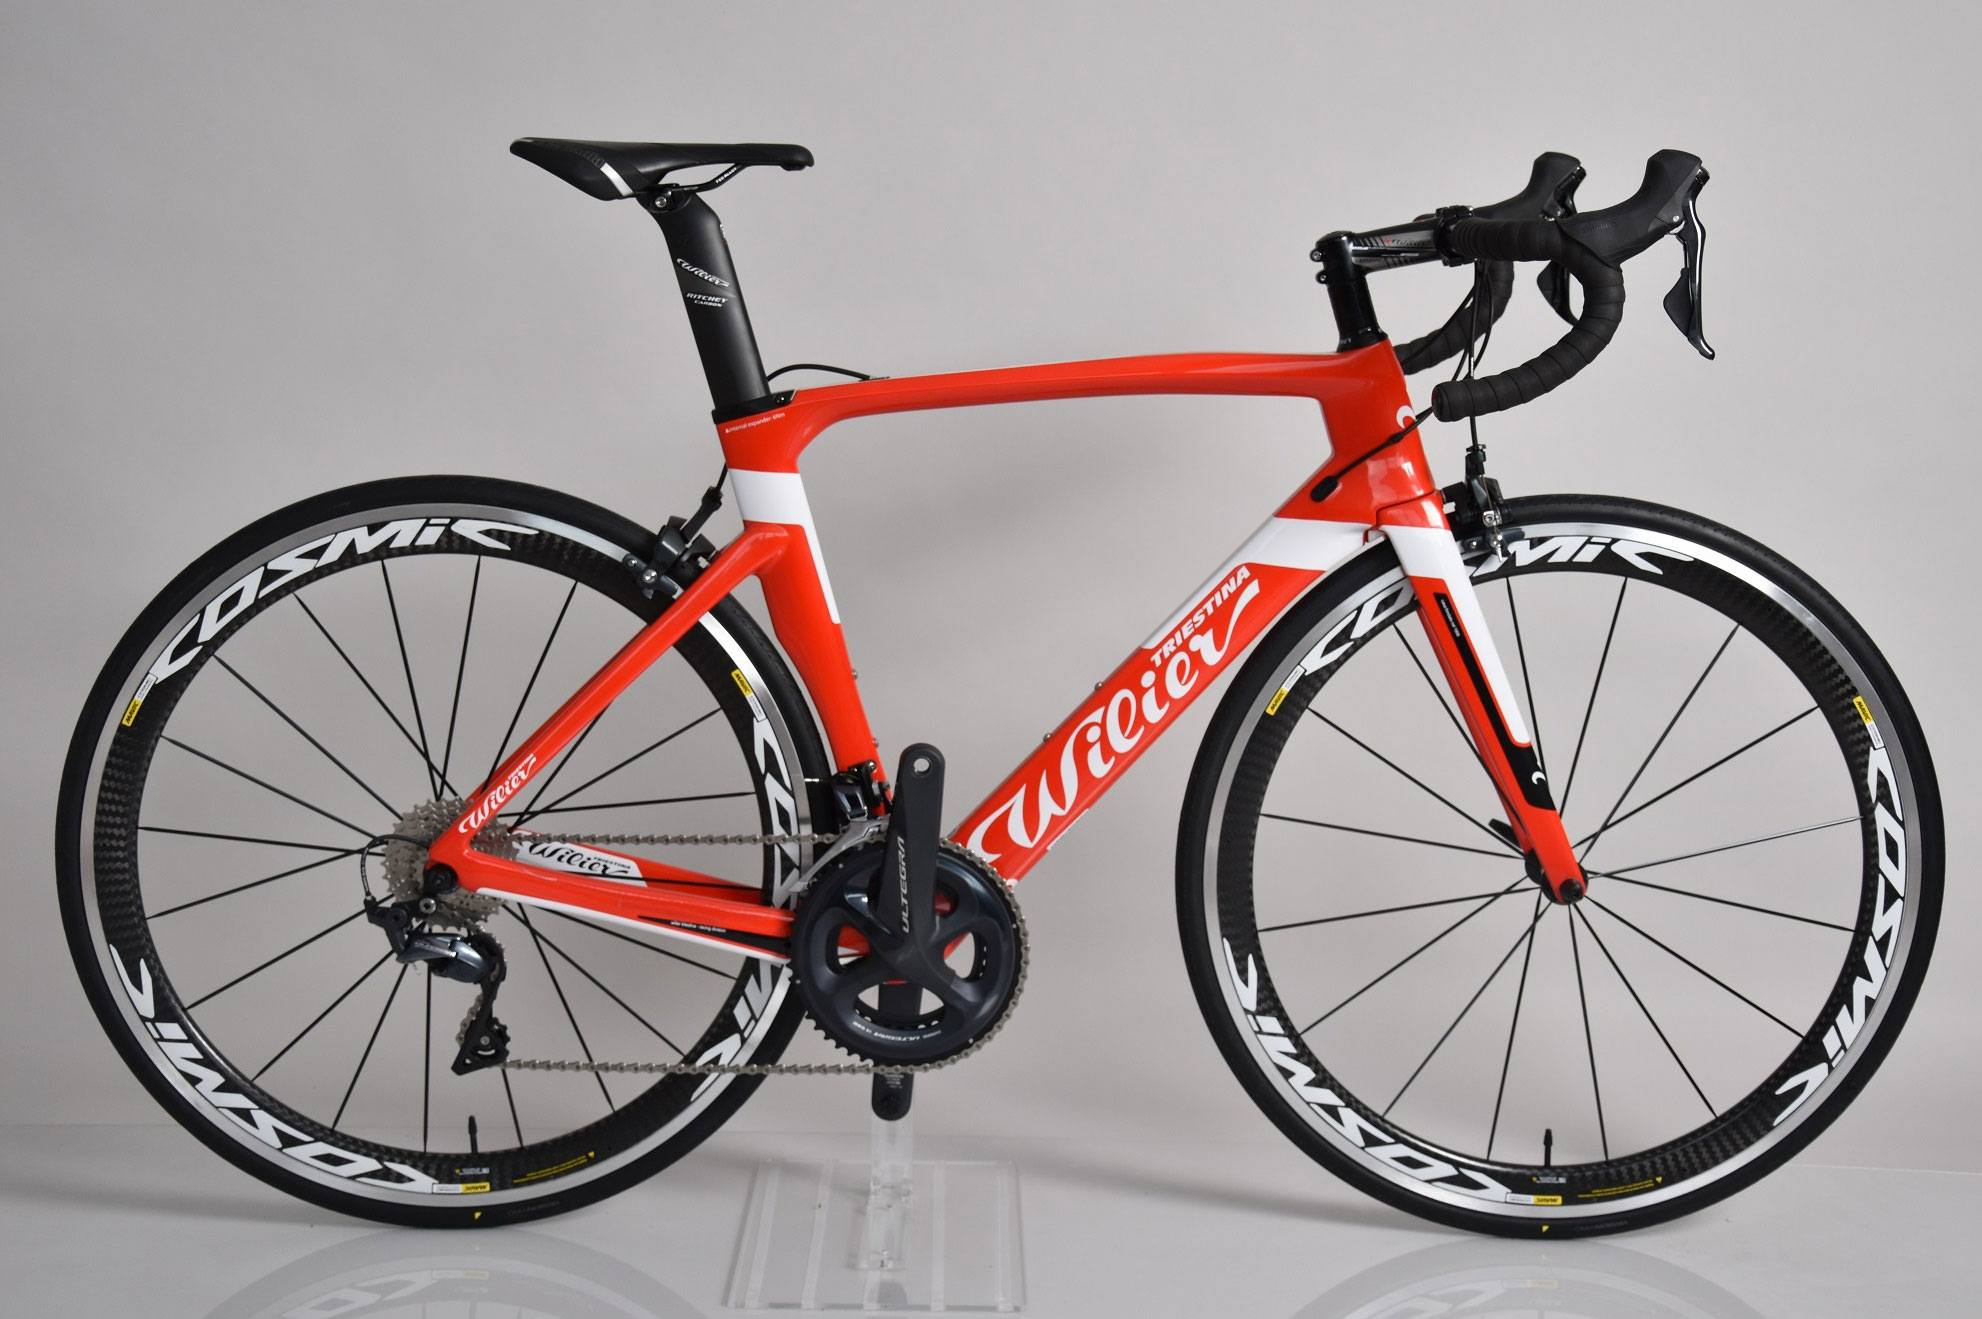 Kolo Wilier Cento 1 Air Ultegra <br> Cosmic Pro Carbon = 2.699€ !!!<br>